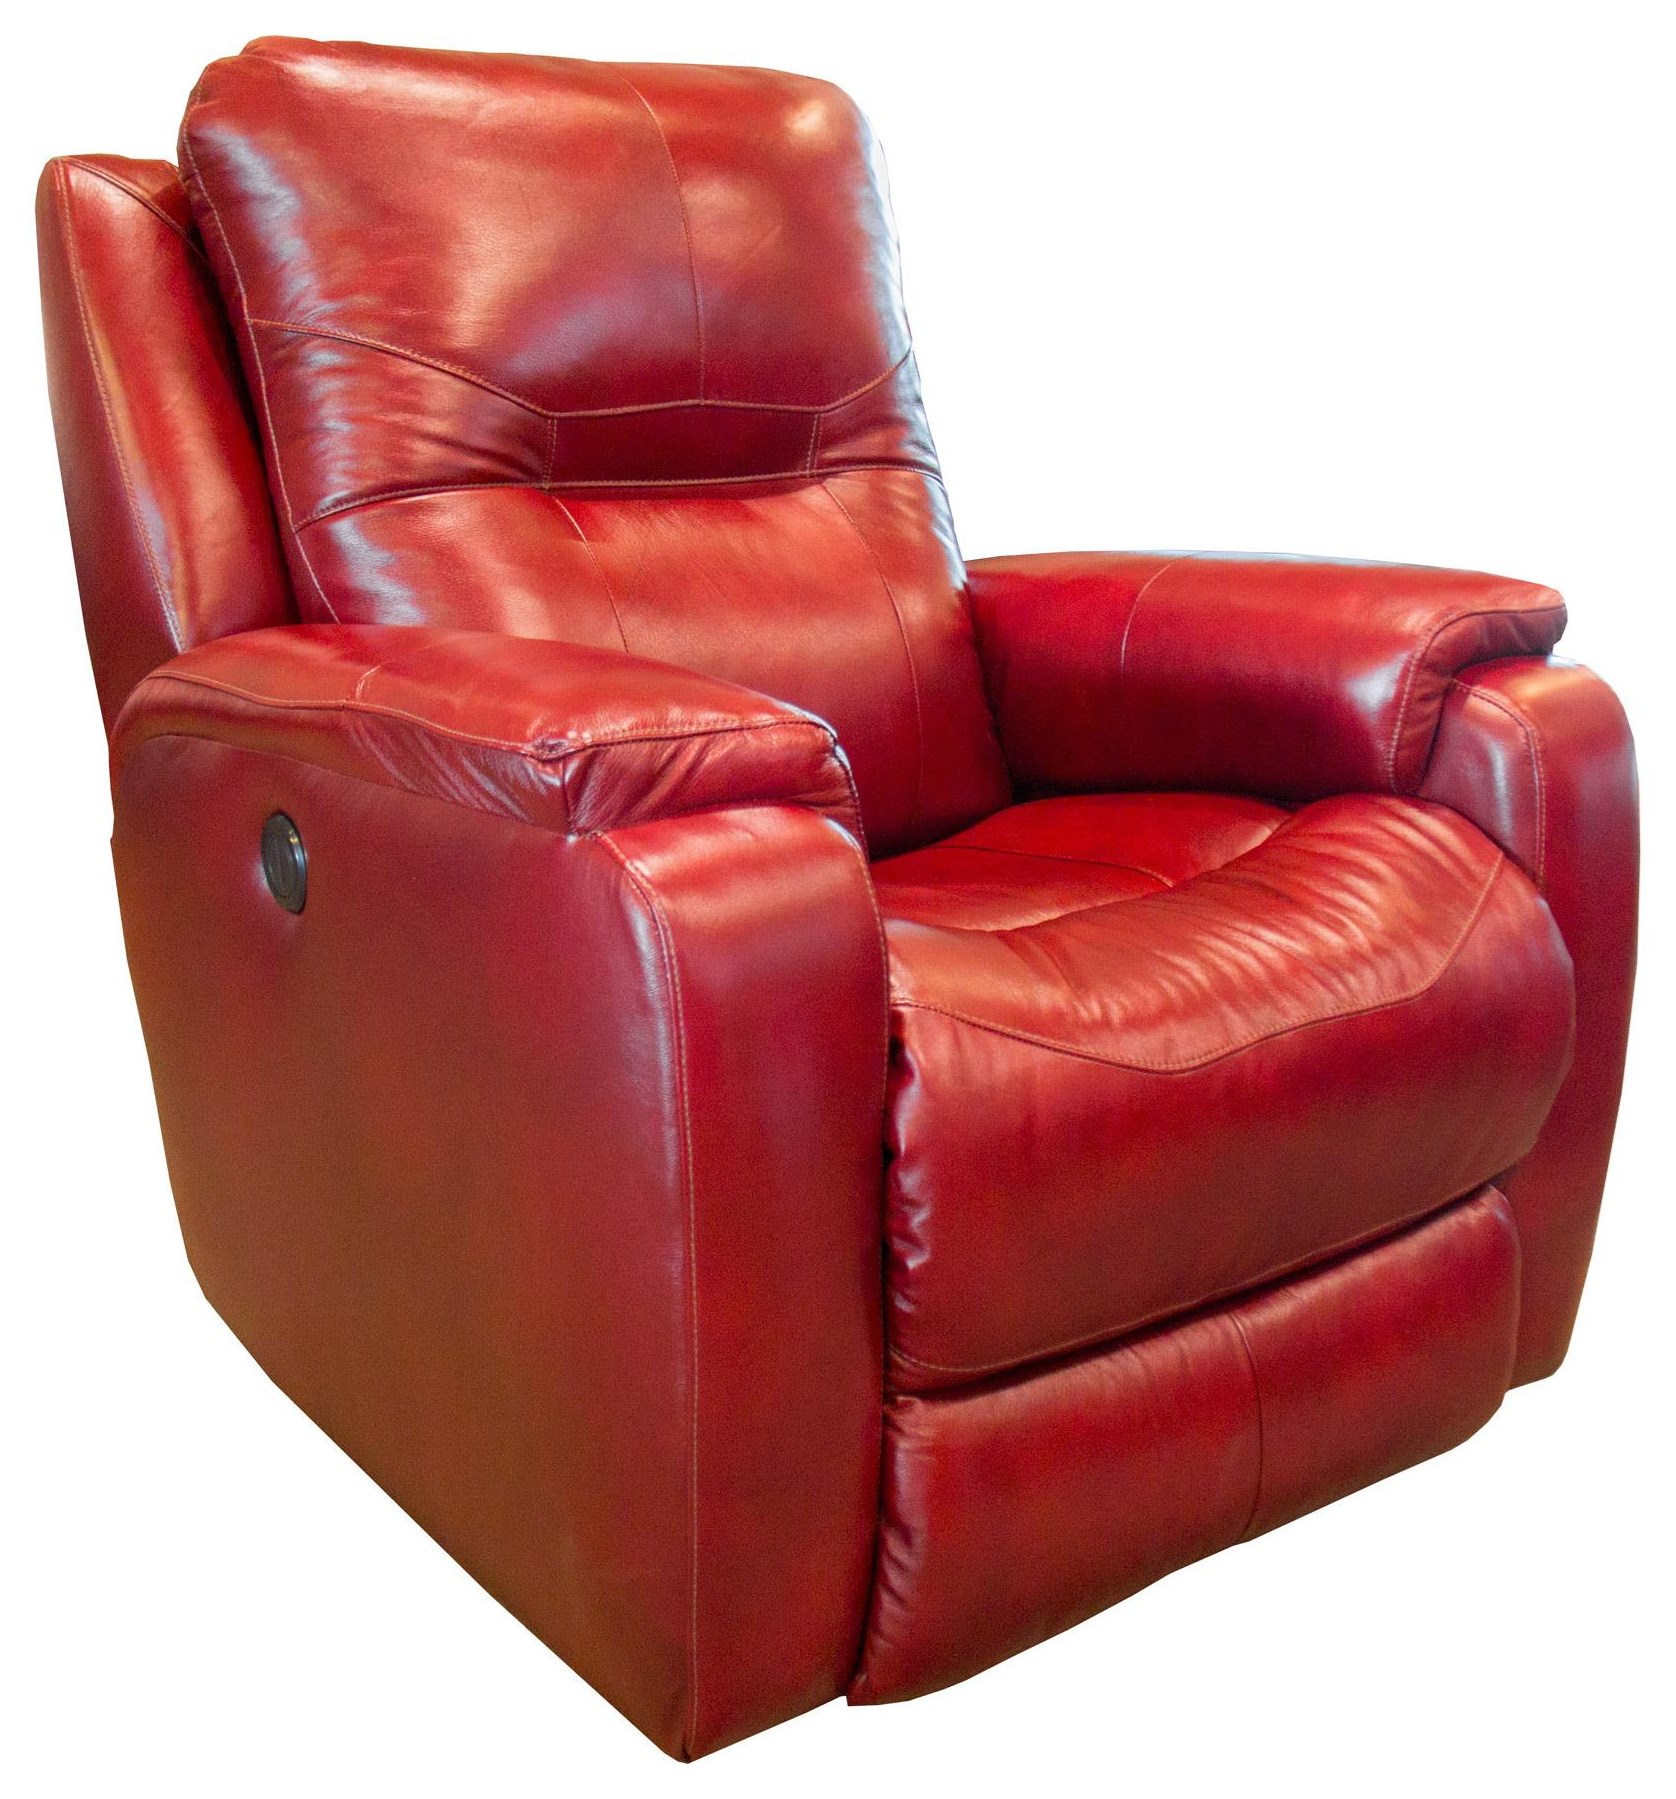 Southern Motion Marsala Power Recliner - Item Number: 1733P-906-42